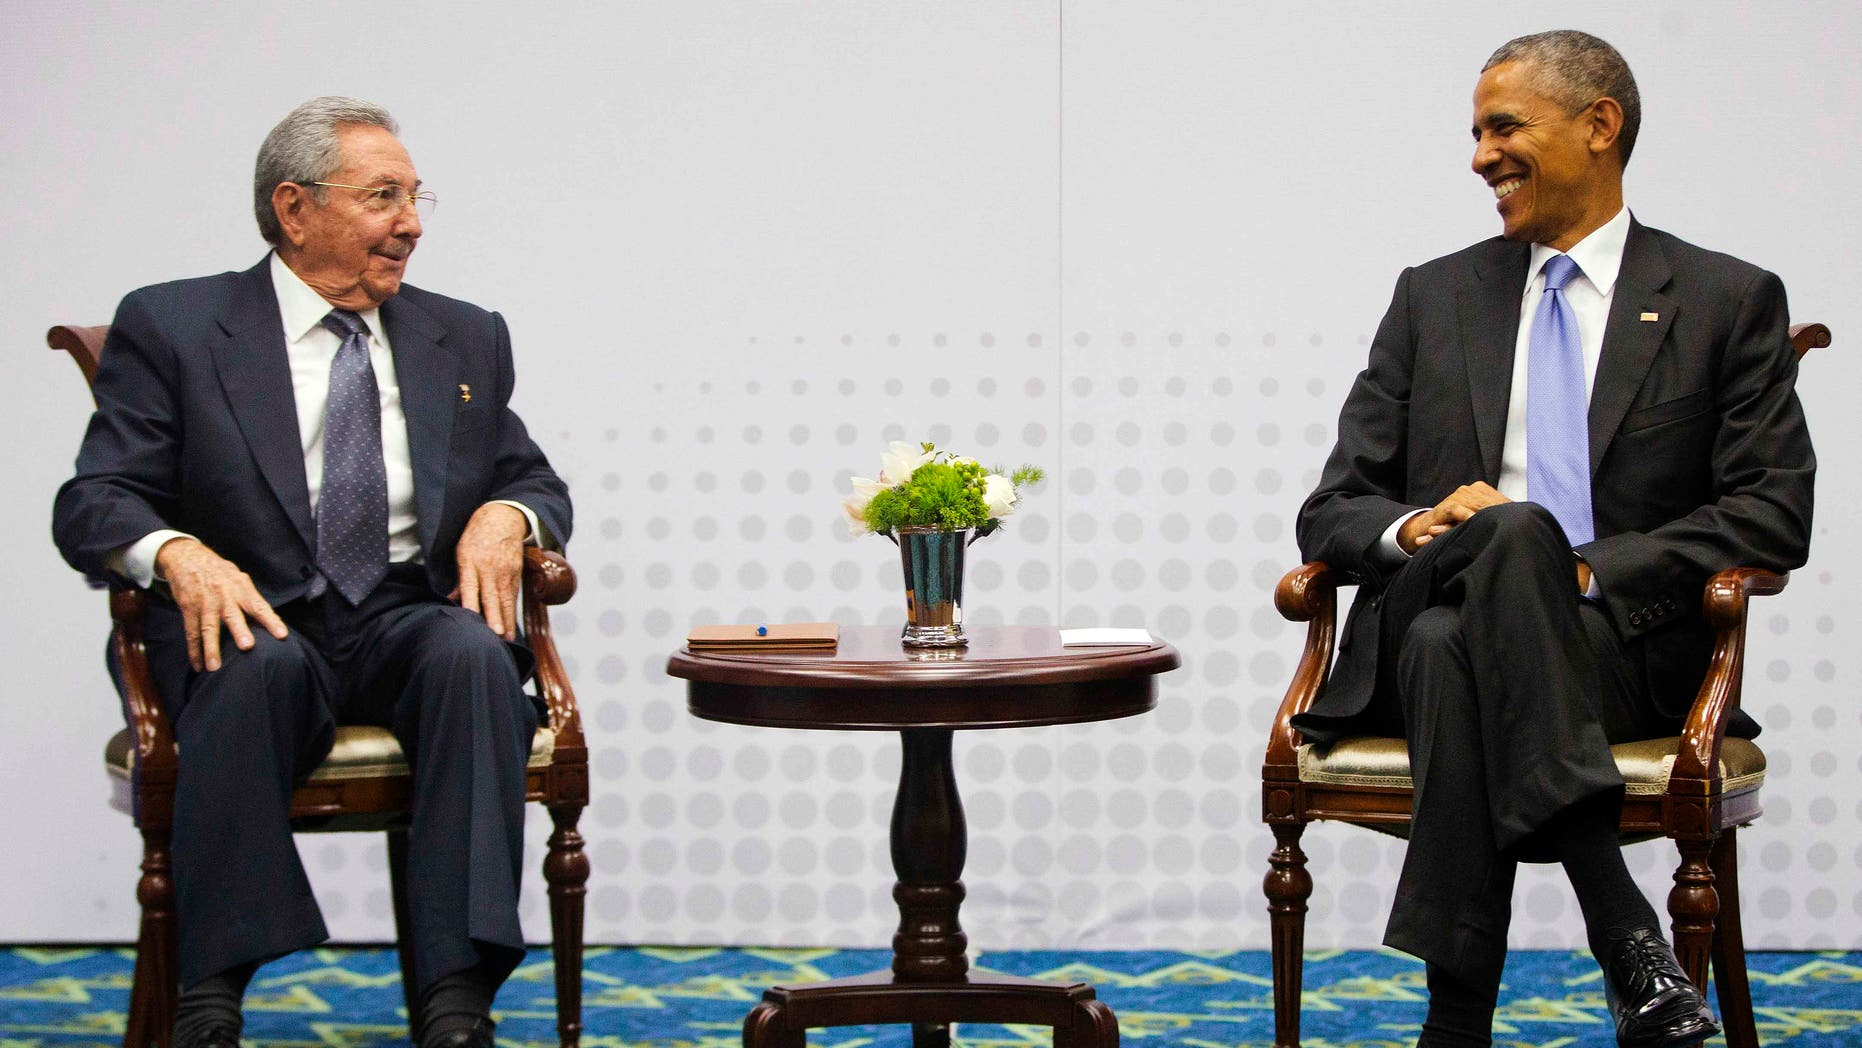 Presidents Raul Castro and Barack Obama at the Summit of the Americas on April 11, 2015.